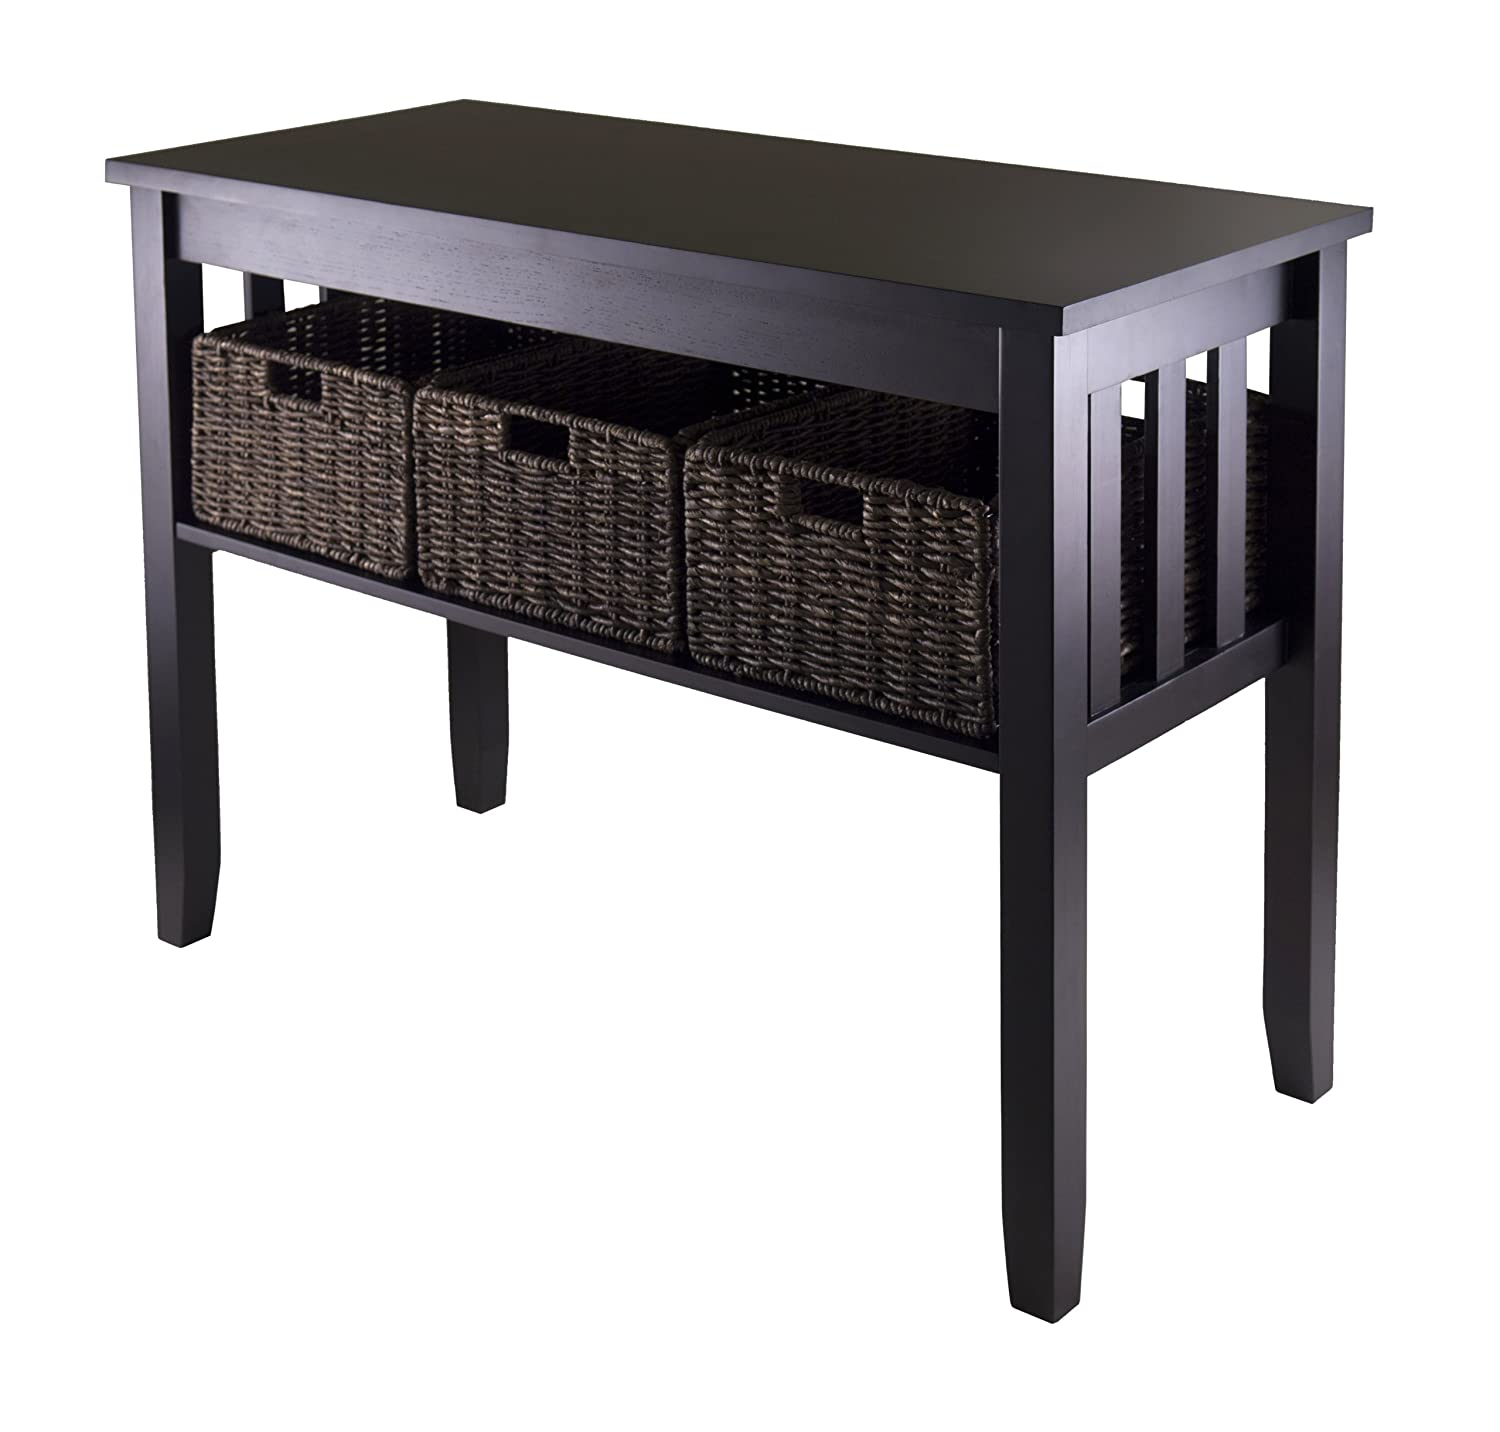 Amazon winsome morris console hall table with 3 foldable amazon winsome morris console hall table with 3 foldable basket kitchen dining geotapseo Image collections